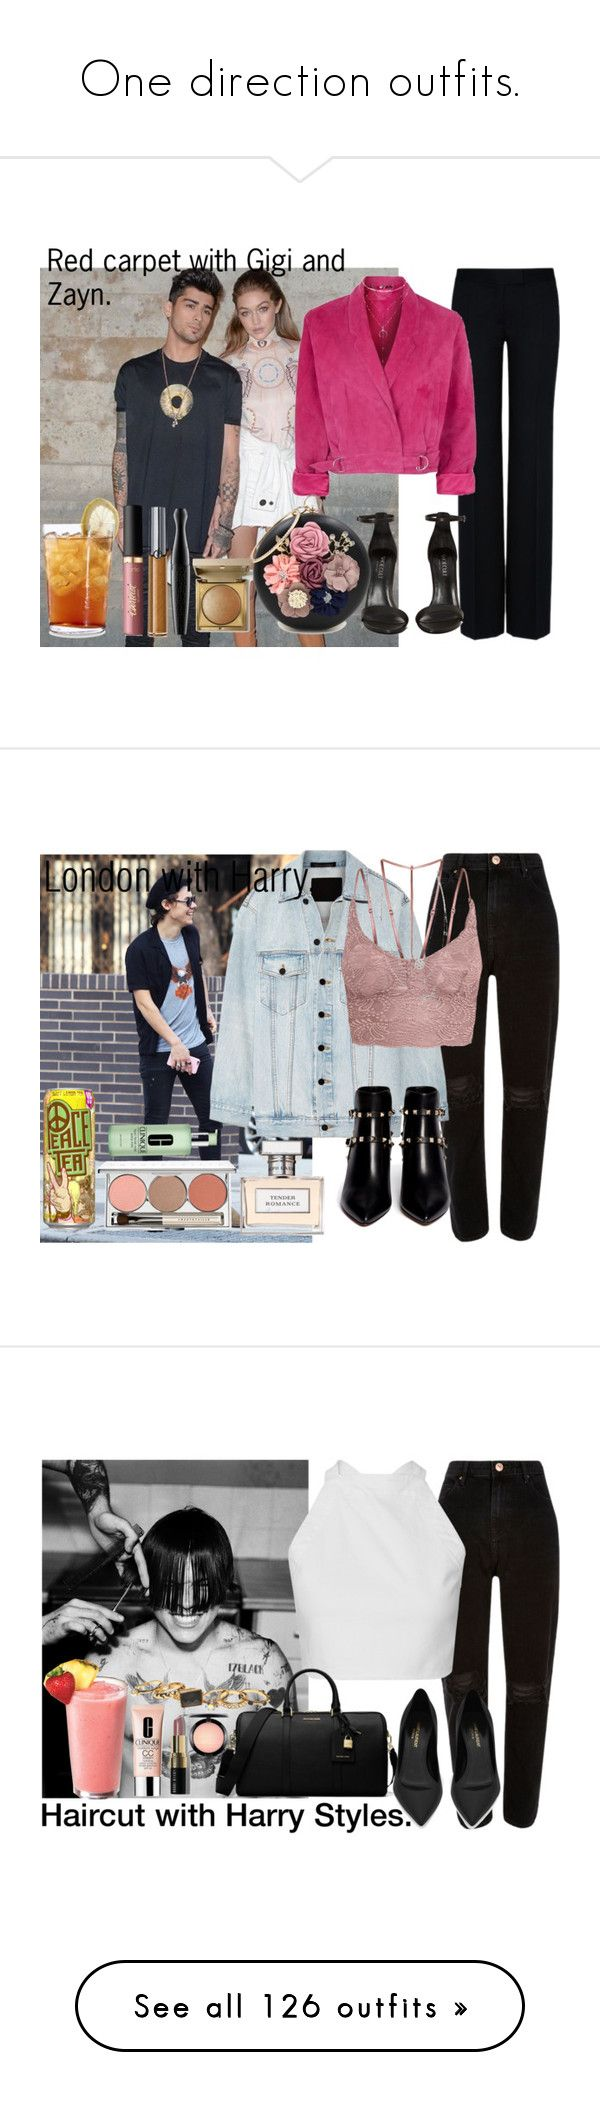 """""""One direction outfits."""" by carla-limitededition ❤ liked on Polyvore featuring OneDirection, onedirectionoutfits, tarte, STELLA McCARTNEY, Schott Zwiesel, Topshop, Shoe Cult, Giorgio Armani, MAC Cosmetics and WithChic"""